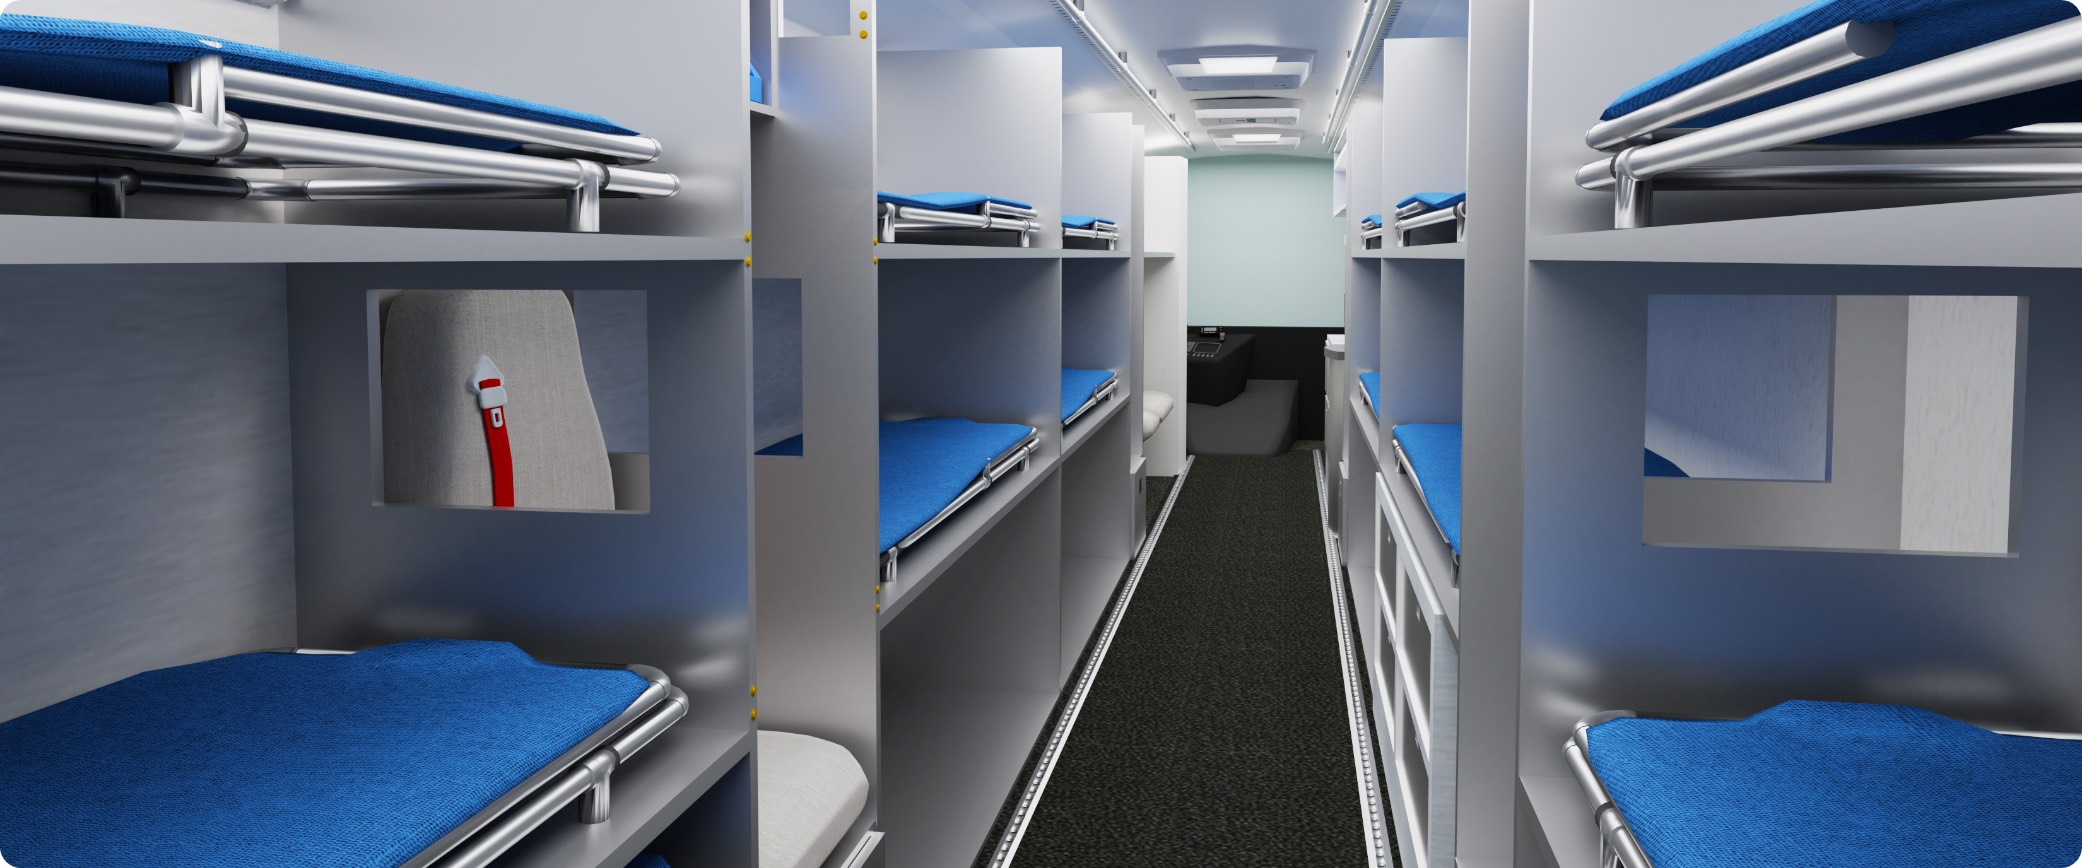 3D render of the AMBUS interior showing drawers and beds